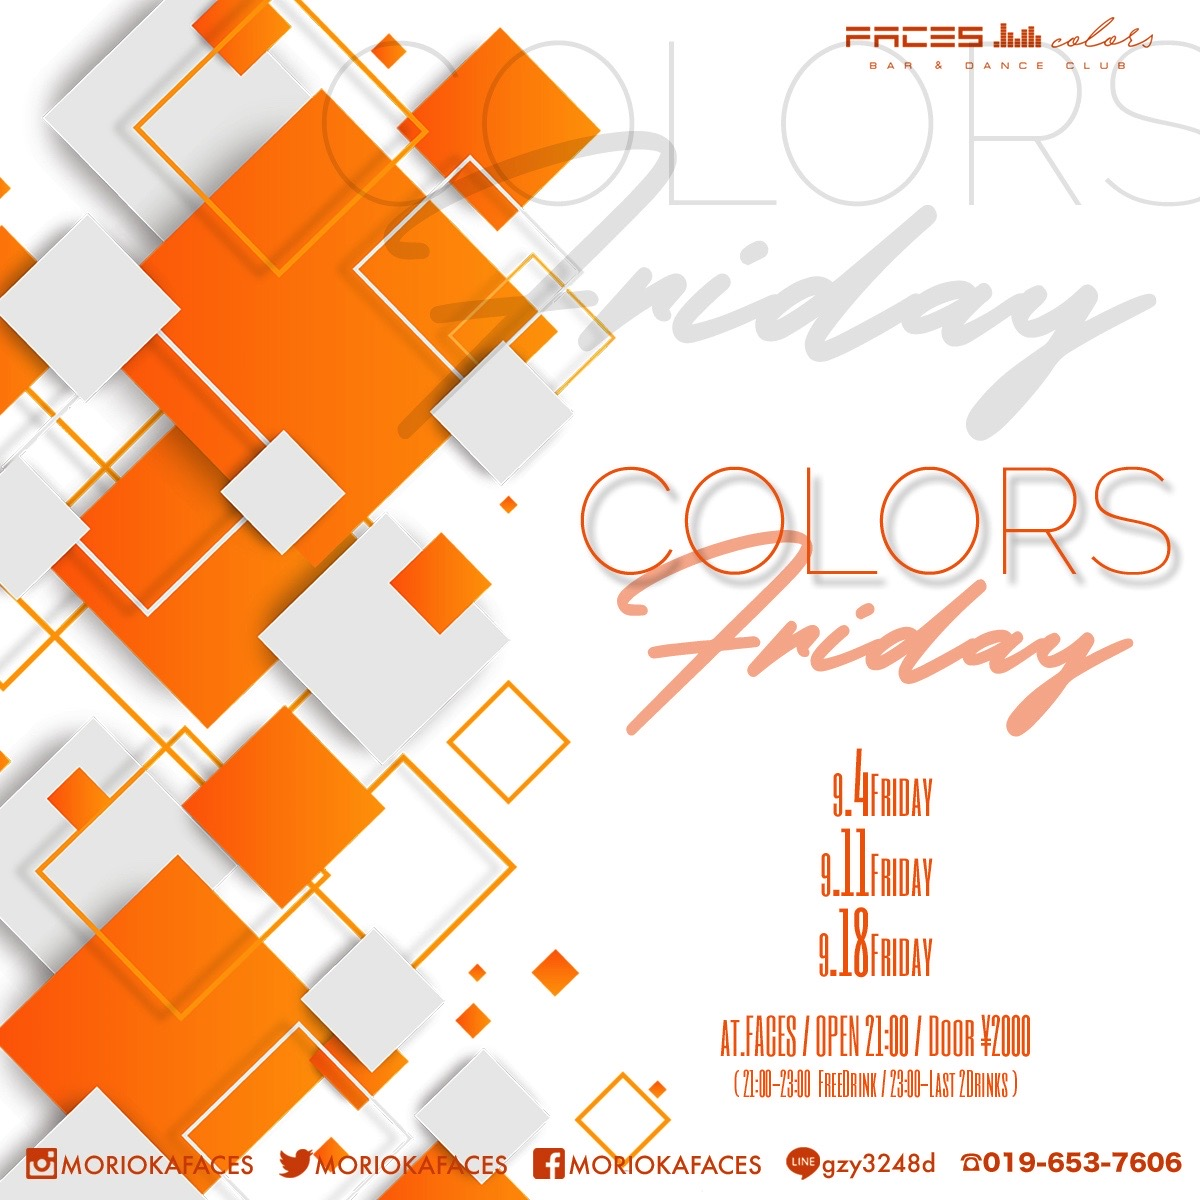 9.4(FRI) COLORS FRIDAY